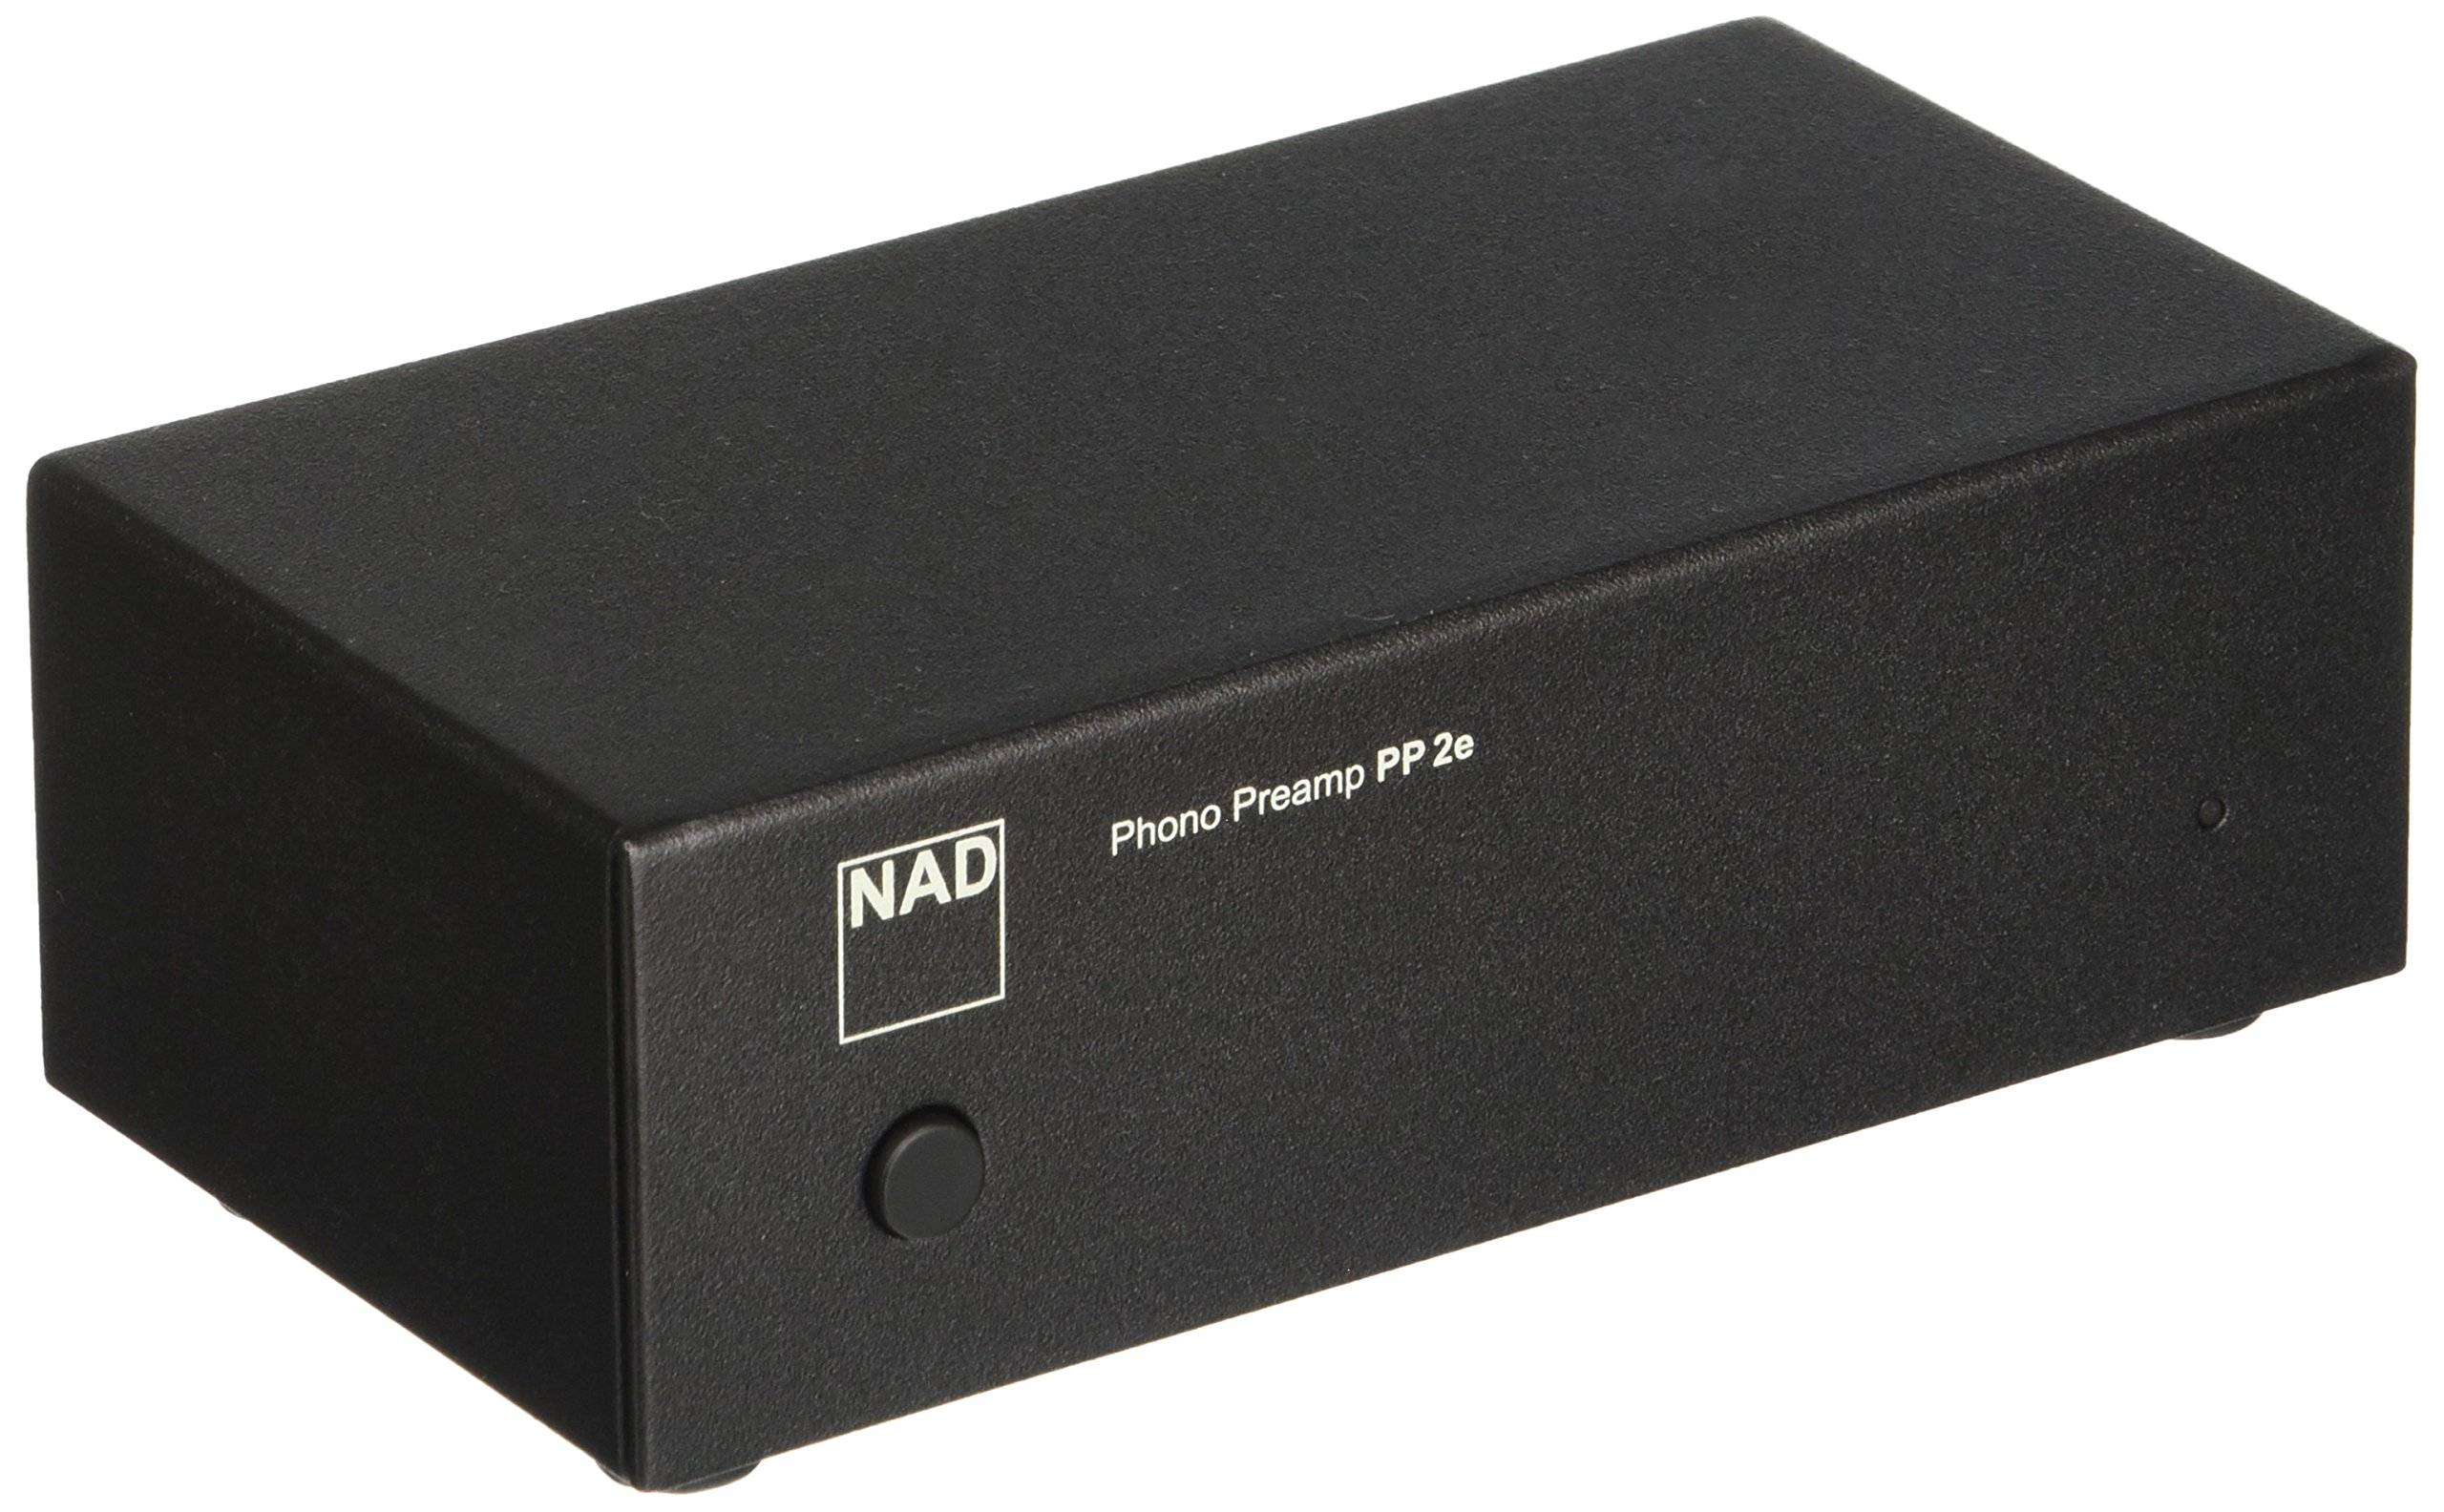 NAD PP 2e Phono Preamplifier by NAD